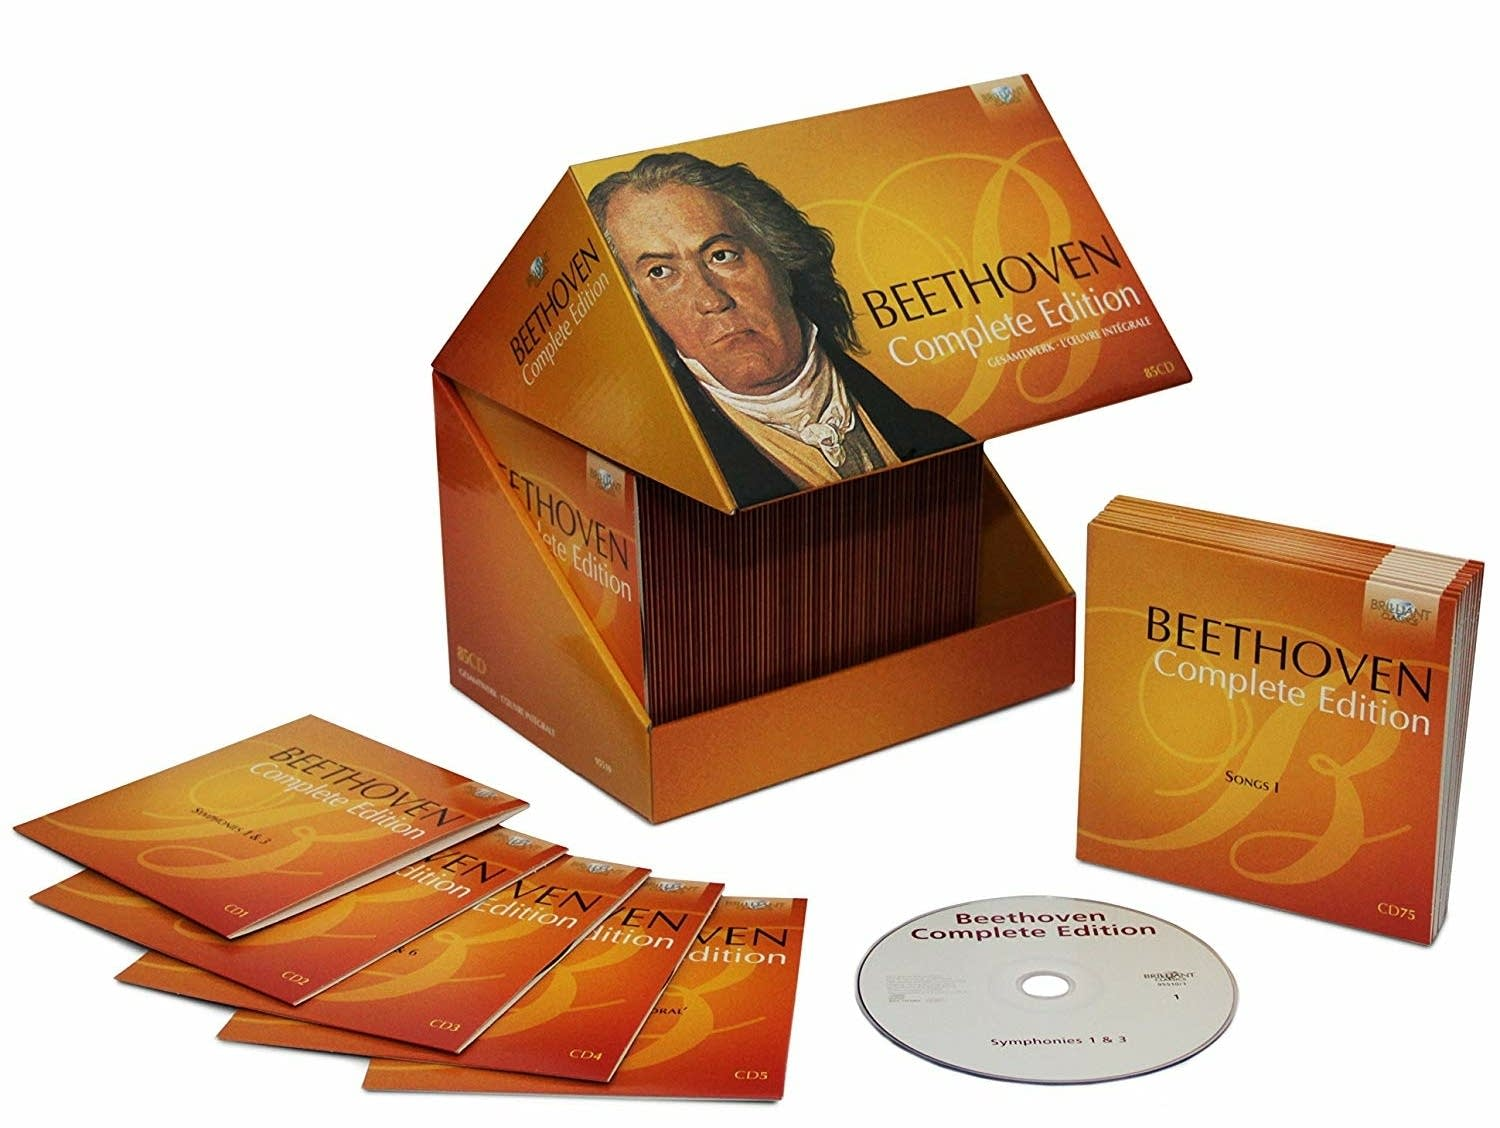 'Beethoven Complete Edition' is an 85-disc boxed set of his works.